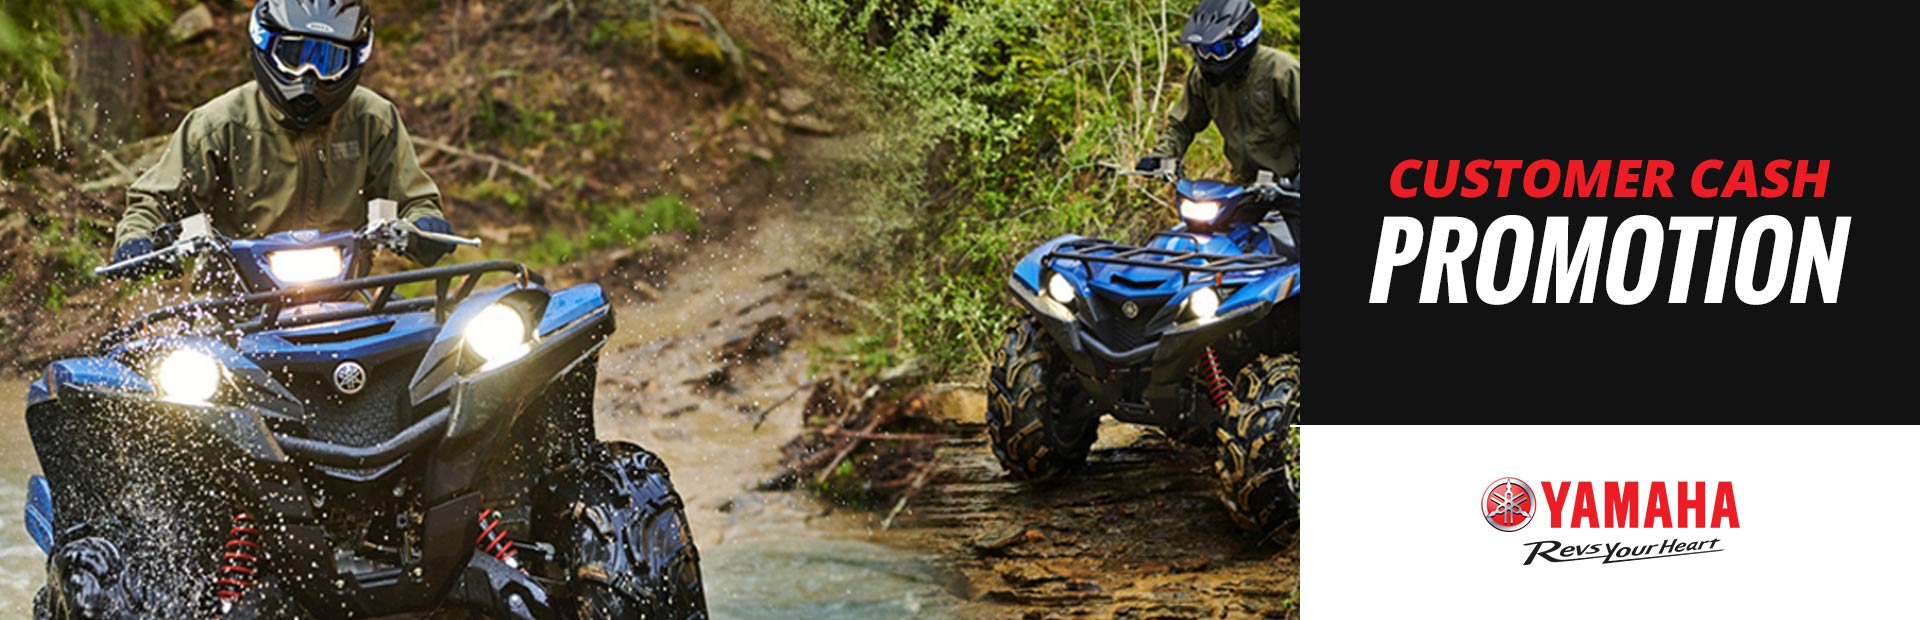 Yamaha: Customer Cash - ATV